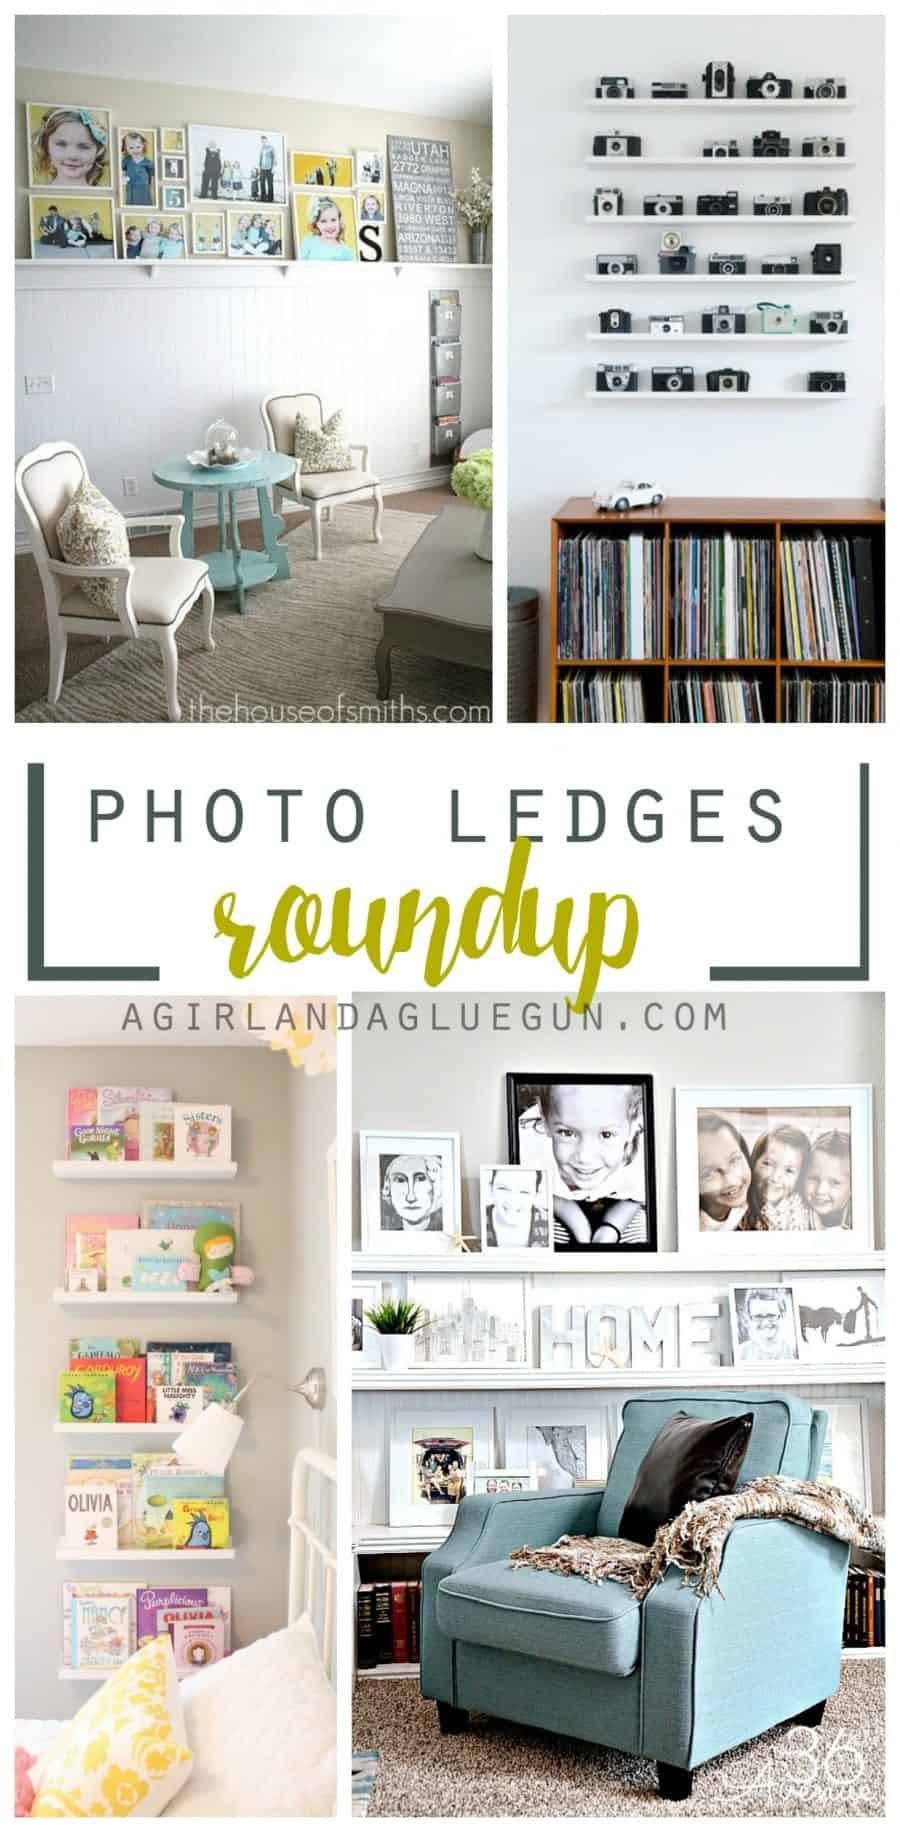 photo ledges roundup